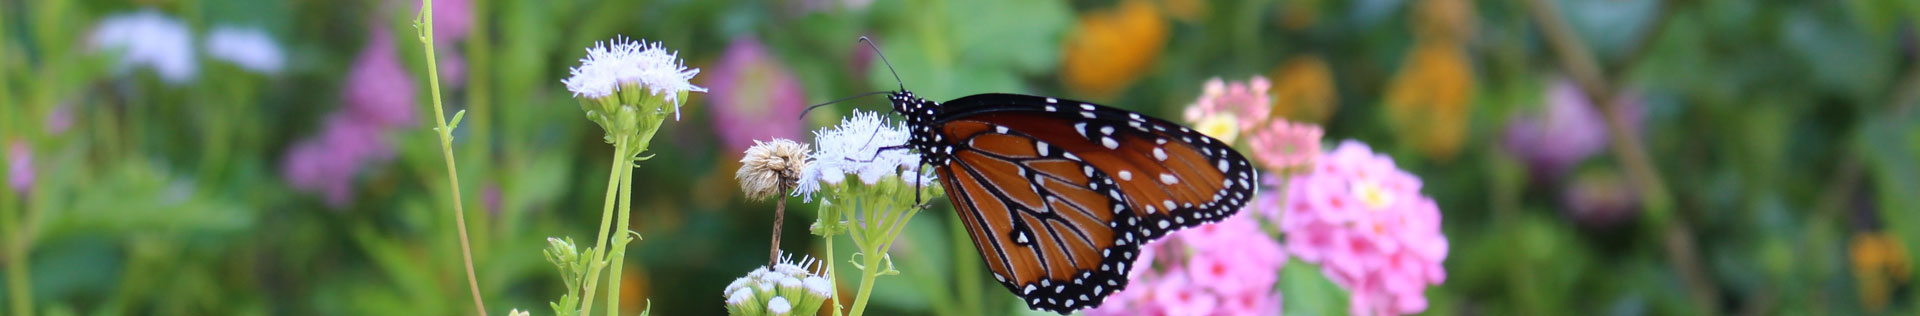 A close up photo of a monarch butterfly on a flower